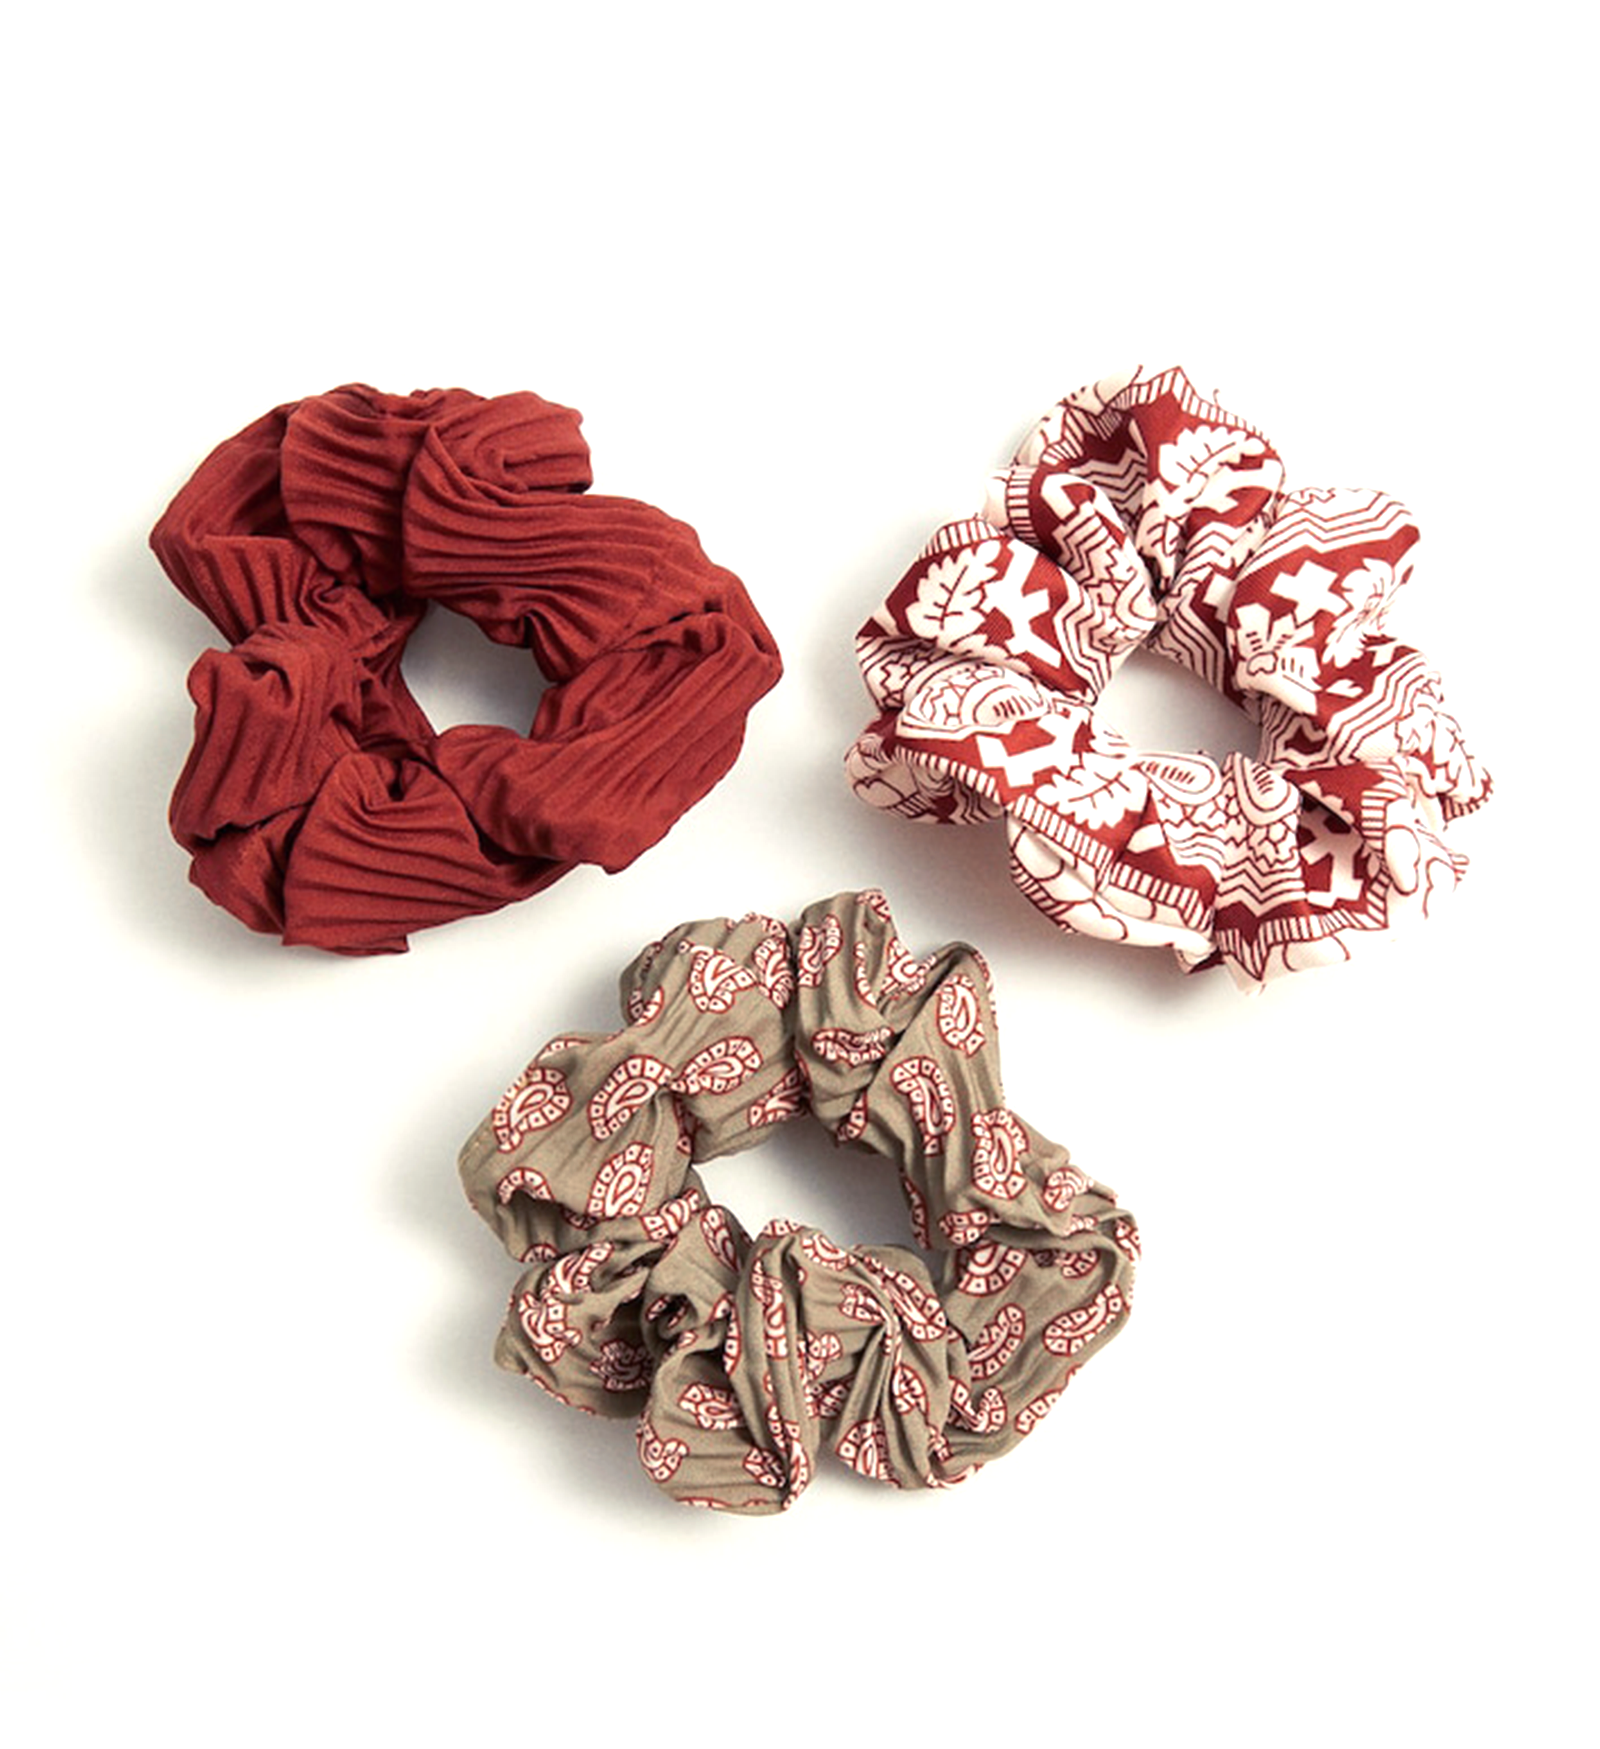 JF19_INT13_Artikel_Image_Hairstyle_Scrunchie_Revival_1600 × 1749_03.png